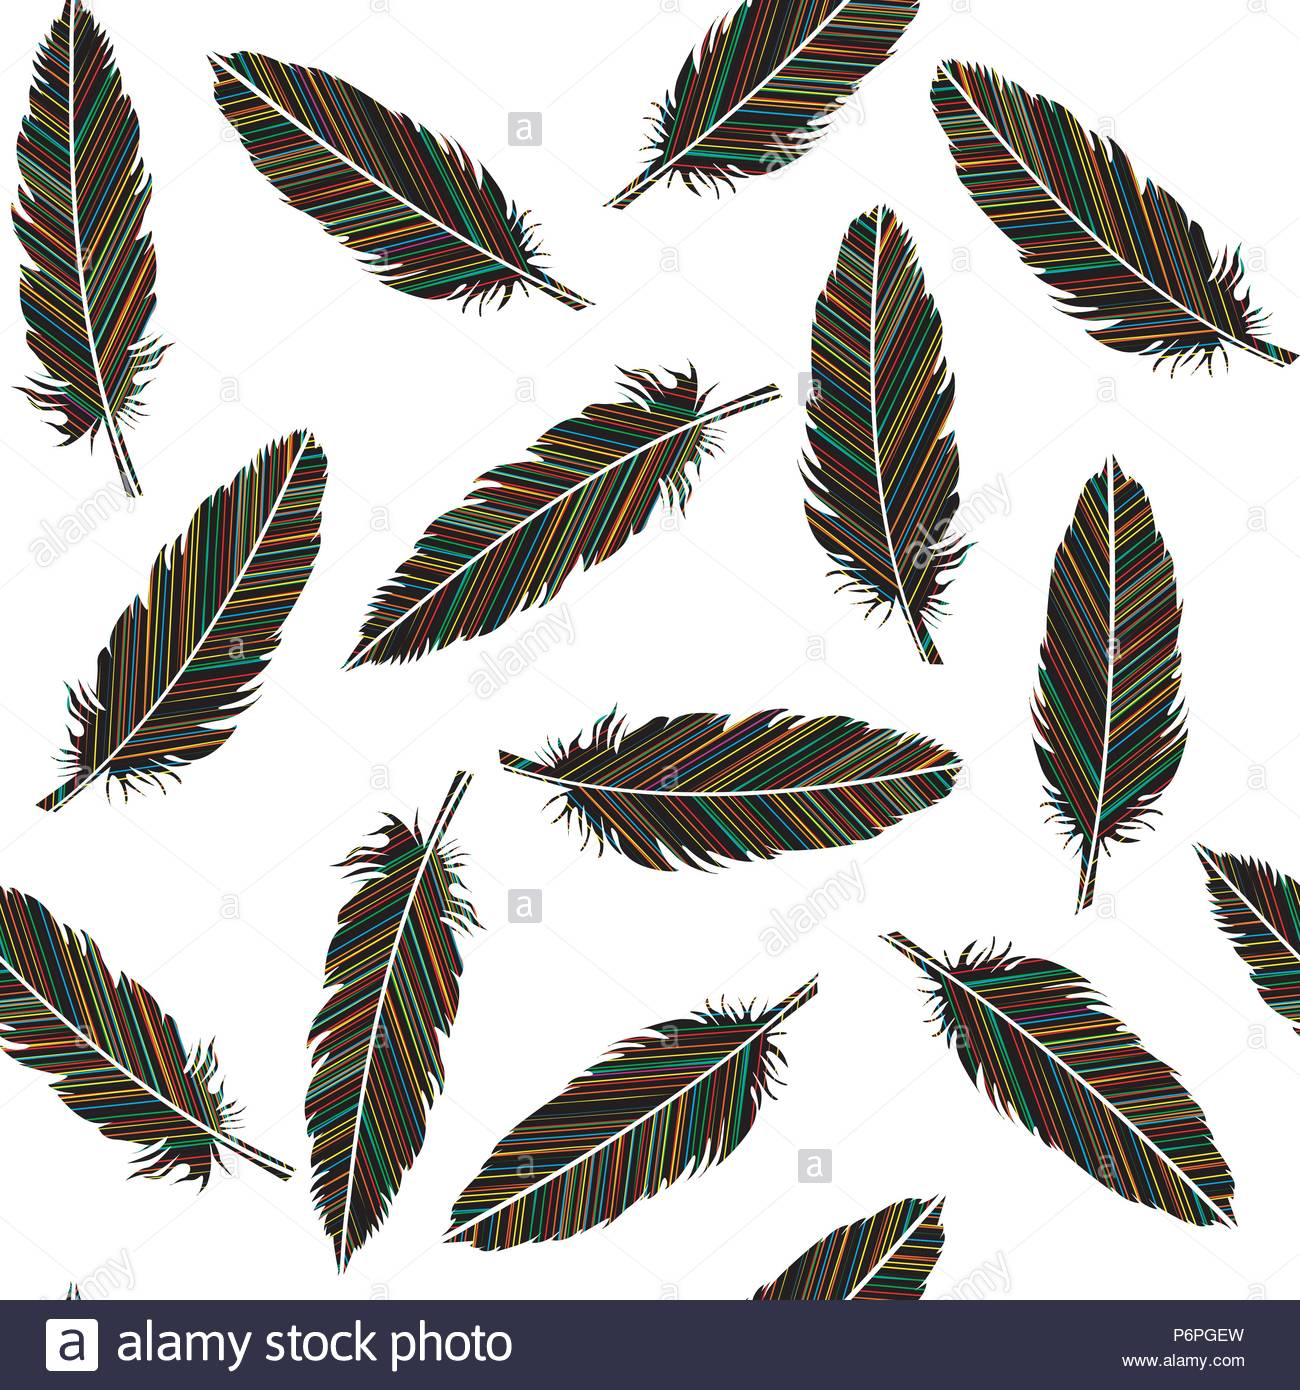 Birds feathers seamless. Feathers with colored lines pattern - Stock Image